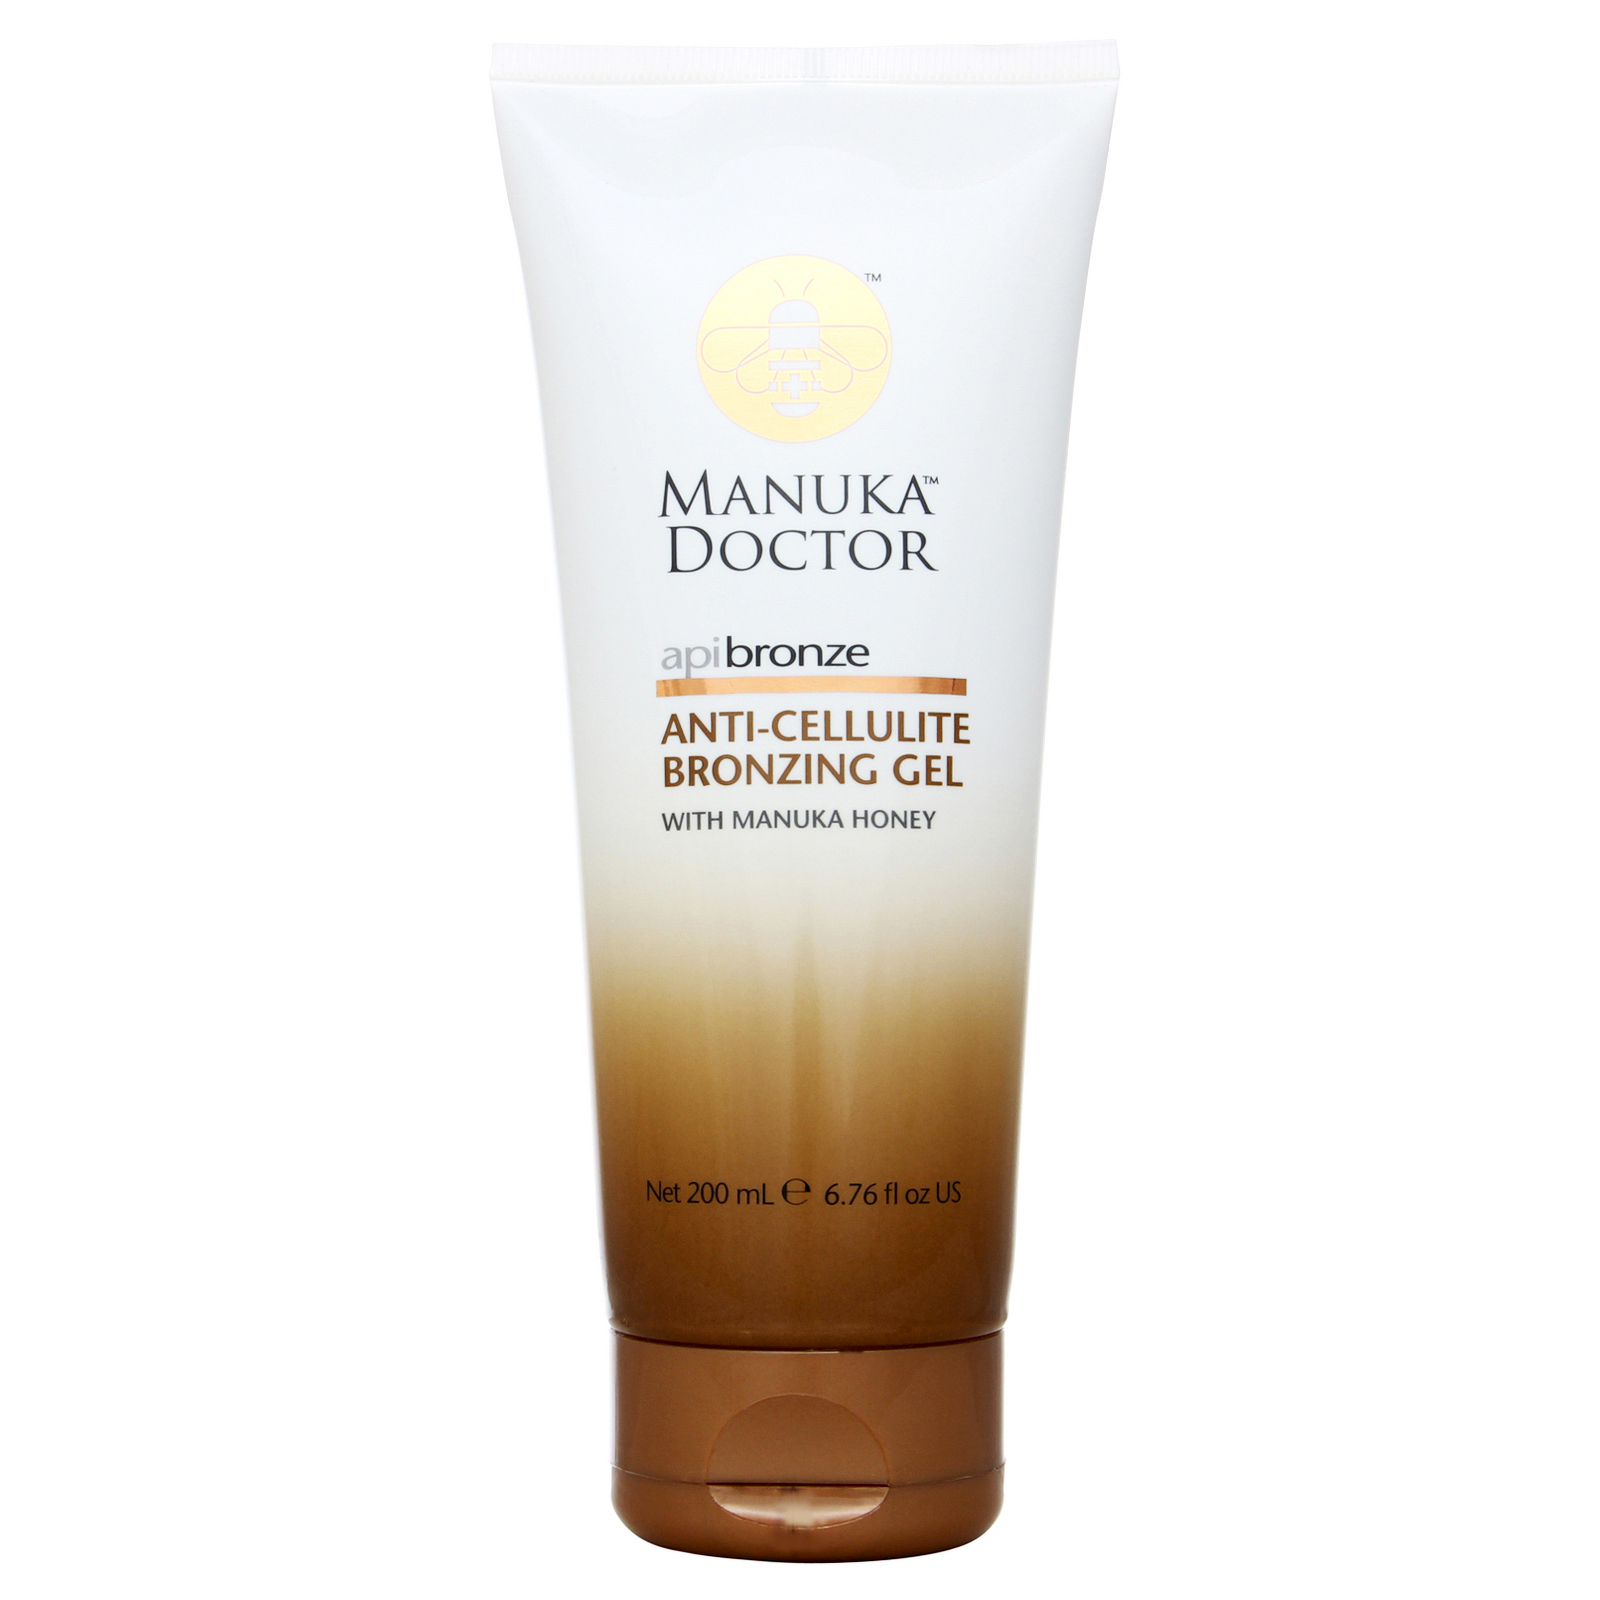 Manuka Doctor ApiBronze Anti Cellulite Bronzing Gel 200ml